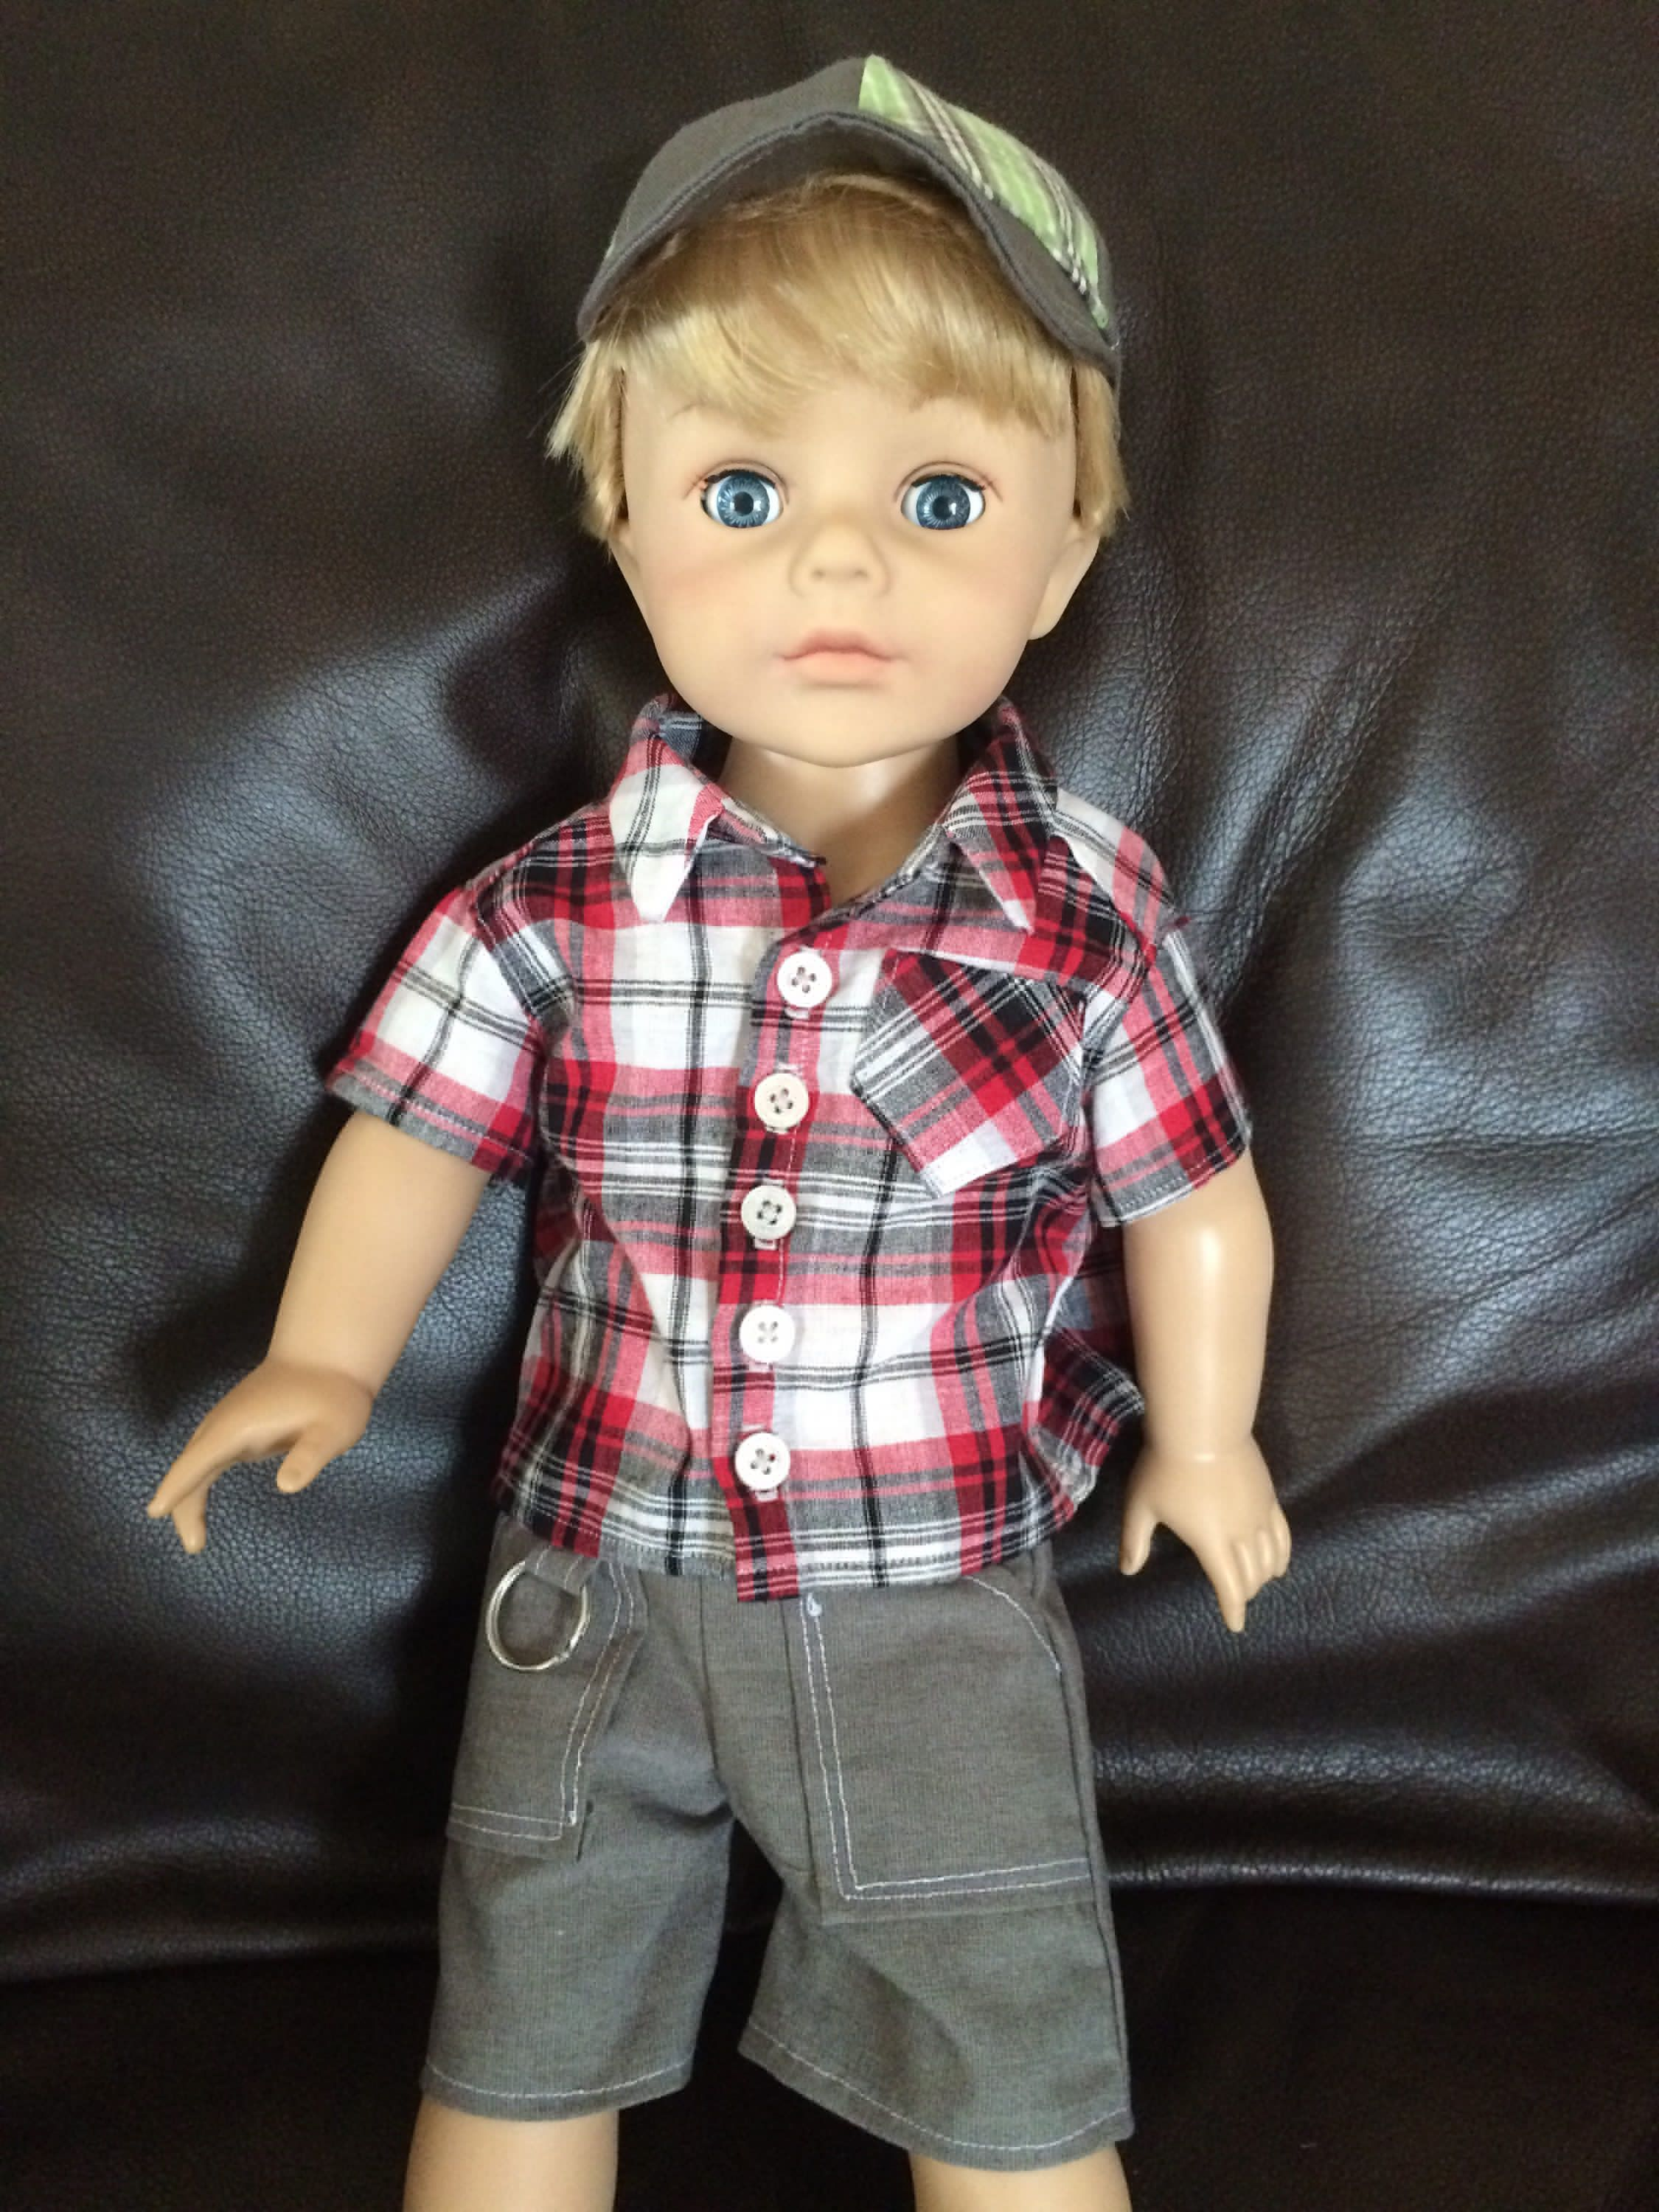 4cf7f2cfc3 Pin erin waldron on georgie boy pinterest boy doll american jpg 2250x3000 Georgie  boy clothing